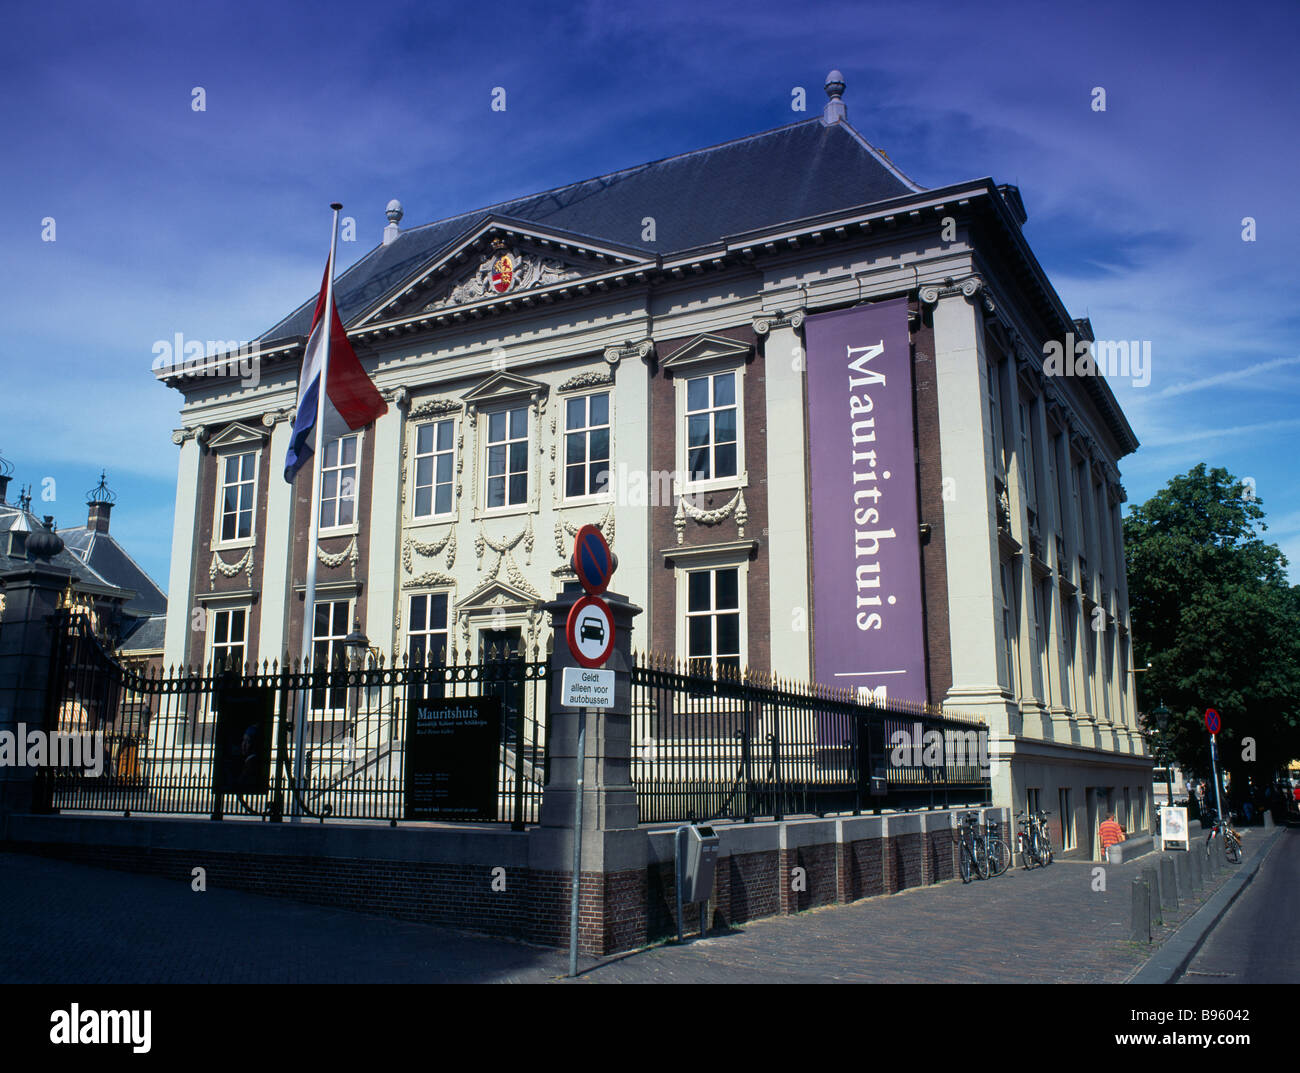 Holland south the hague mauritshuis art gallery building